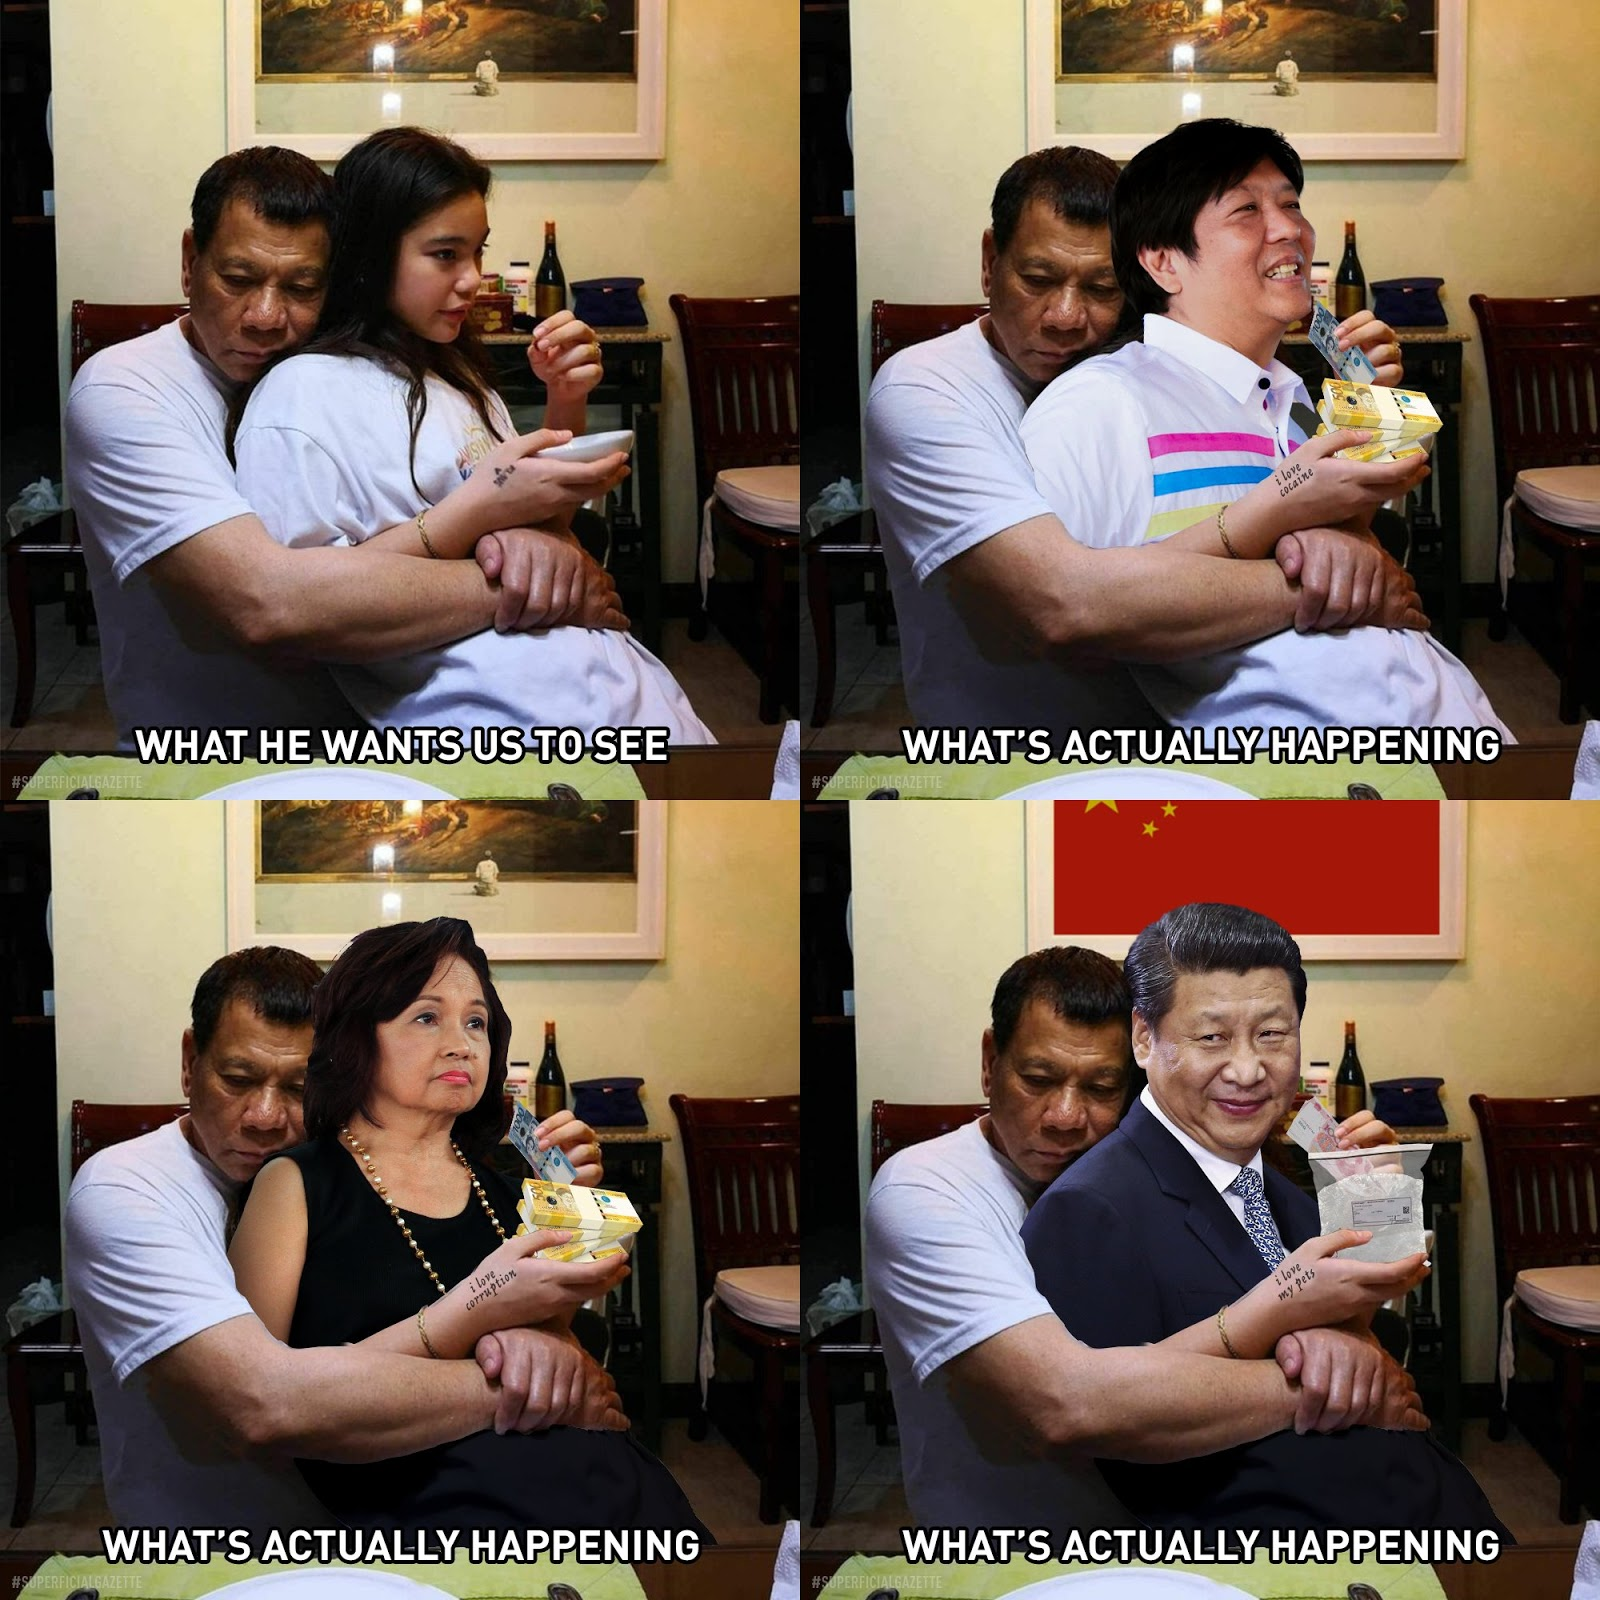 Photo Of Duterte With Kitty Turned Into A Vicious And Distasteful